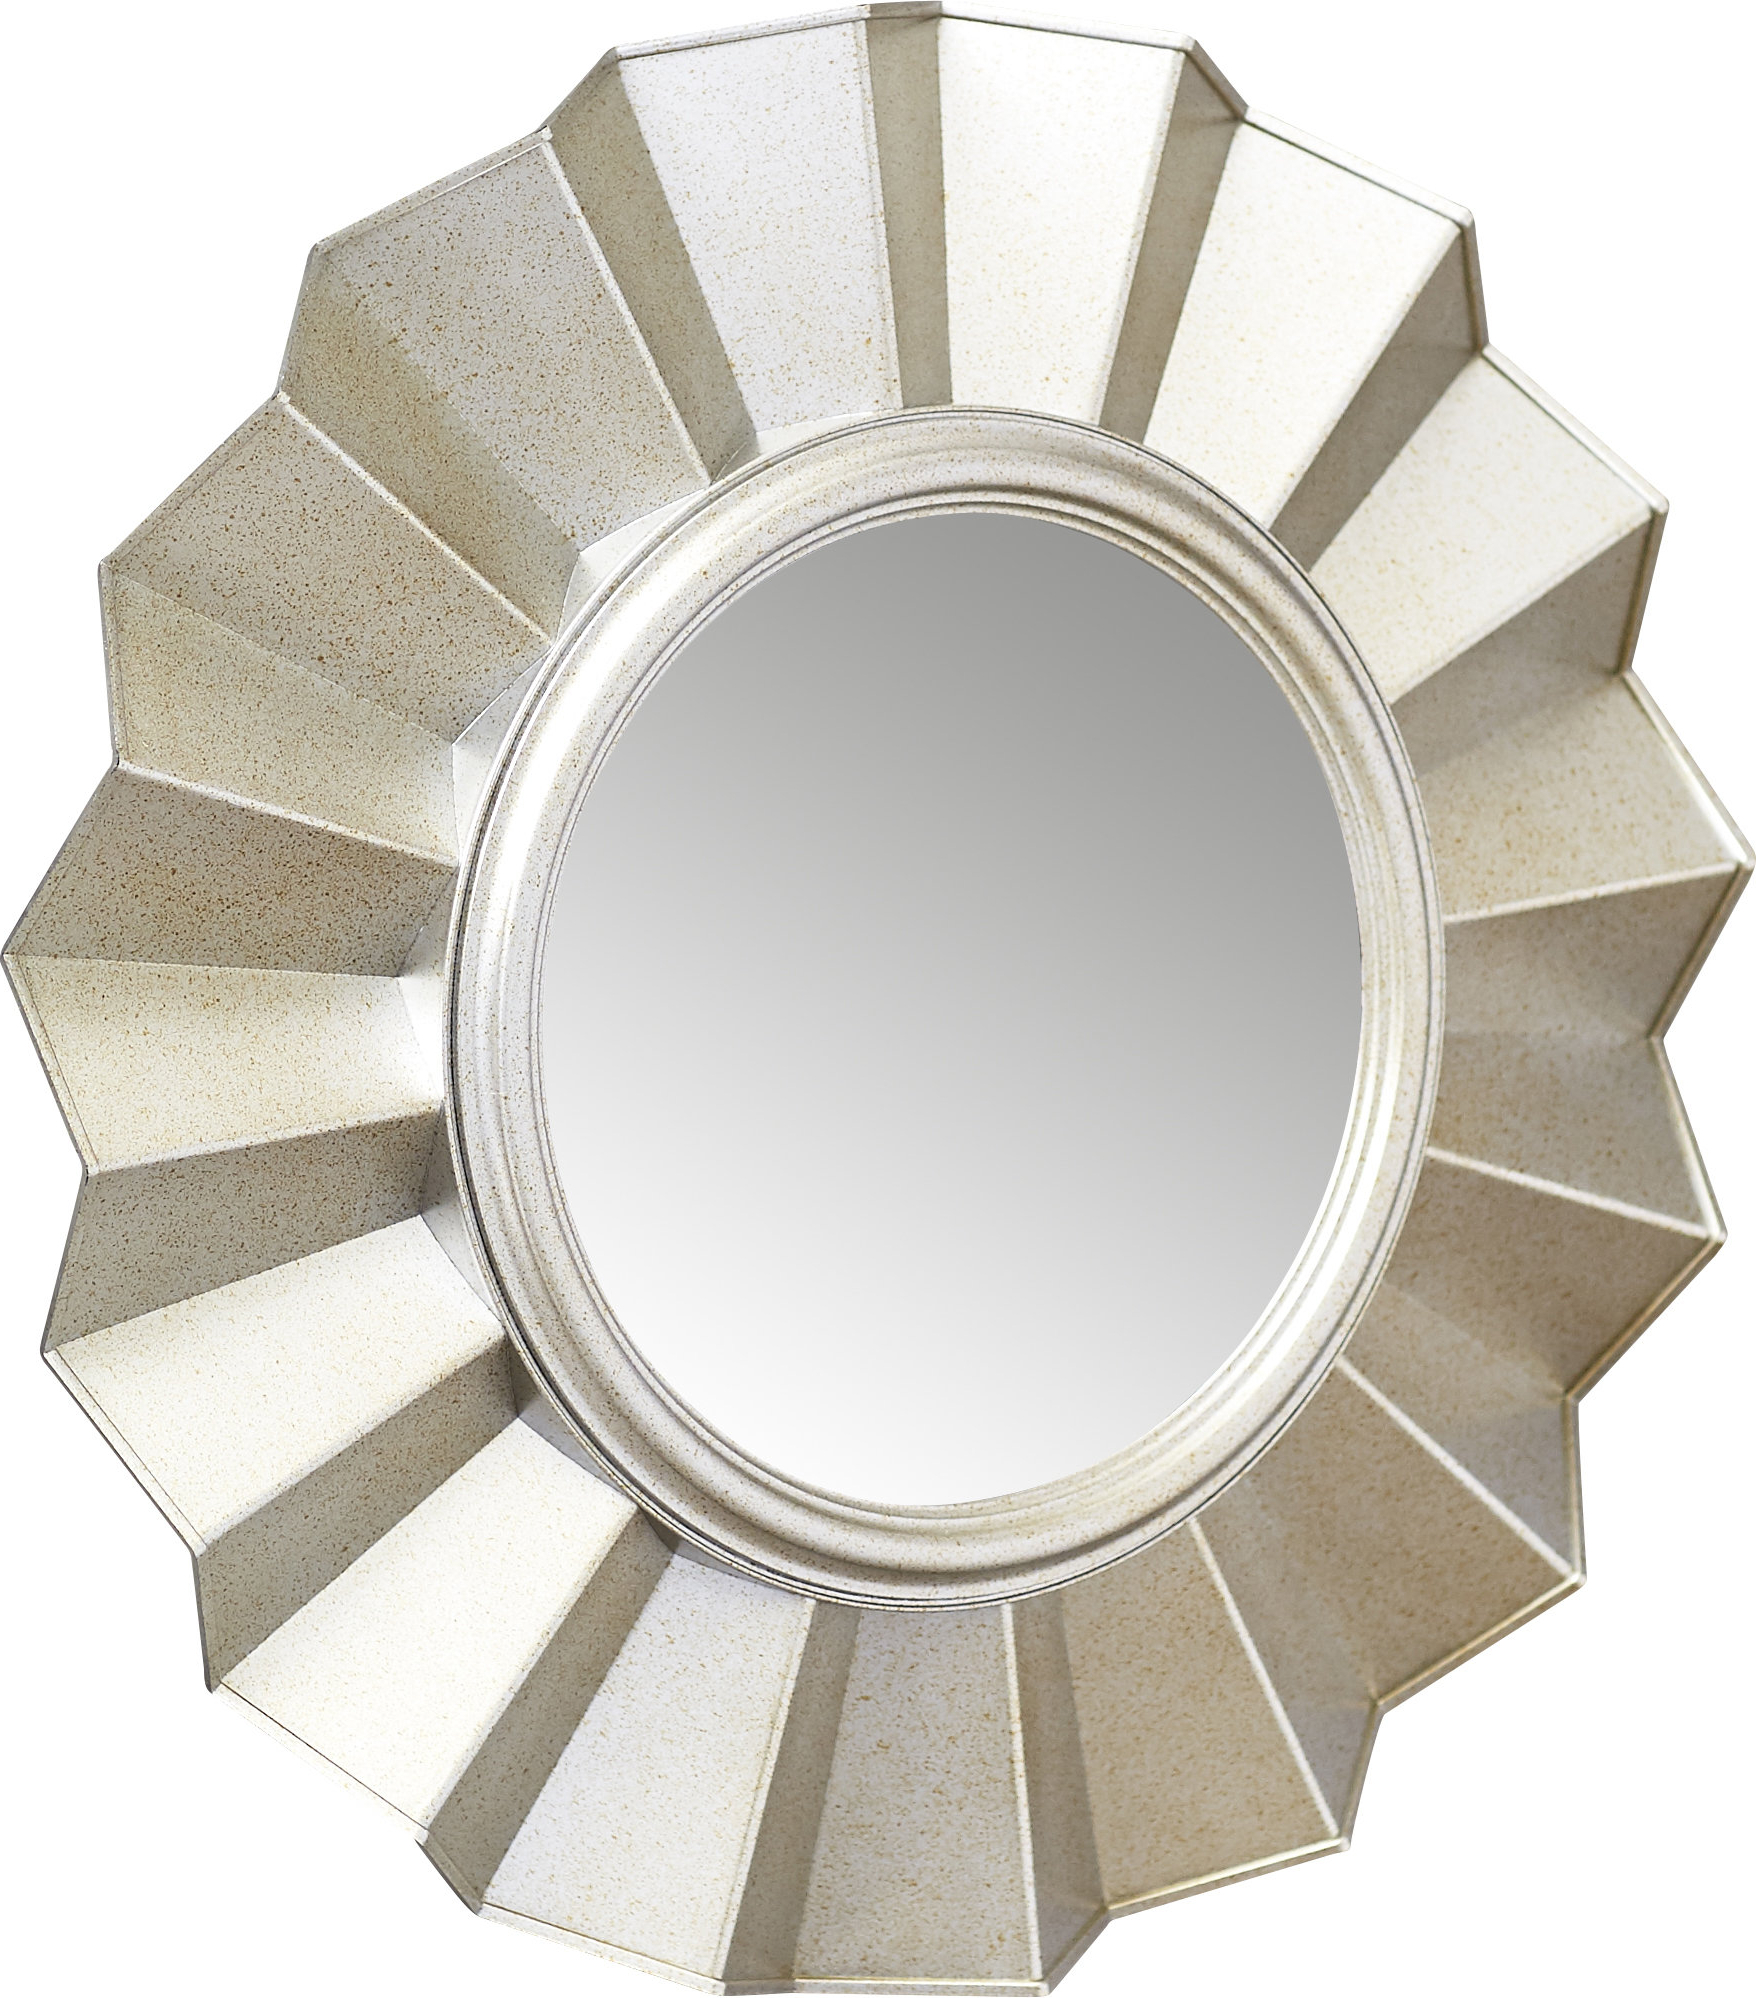 Vertical Round Wall Mirror For Most Up To Date Vertical Round Wall Mirrors (View 4 of 20)